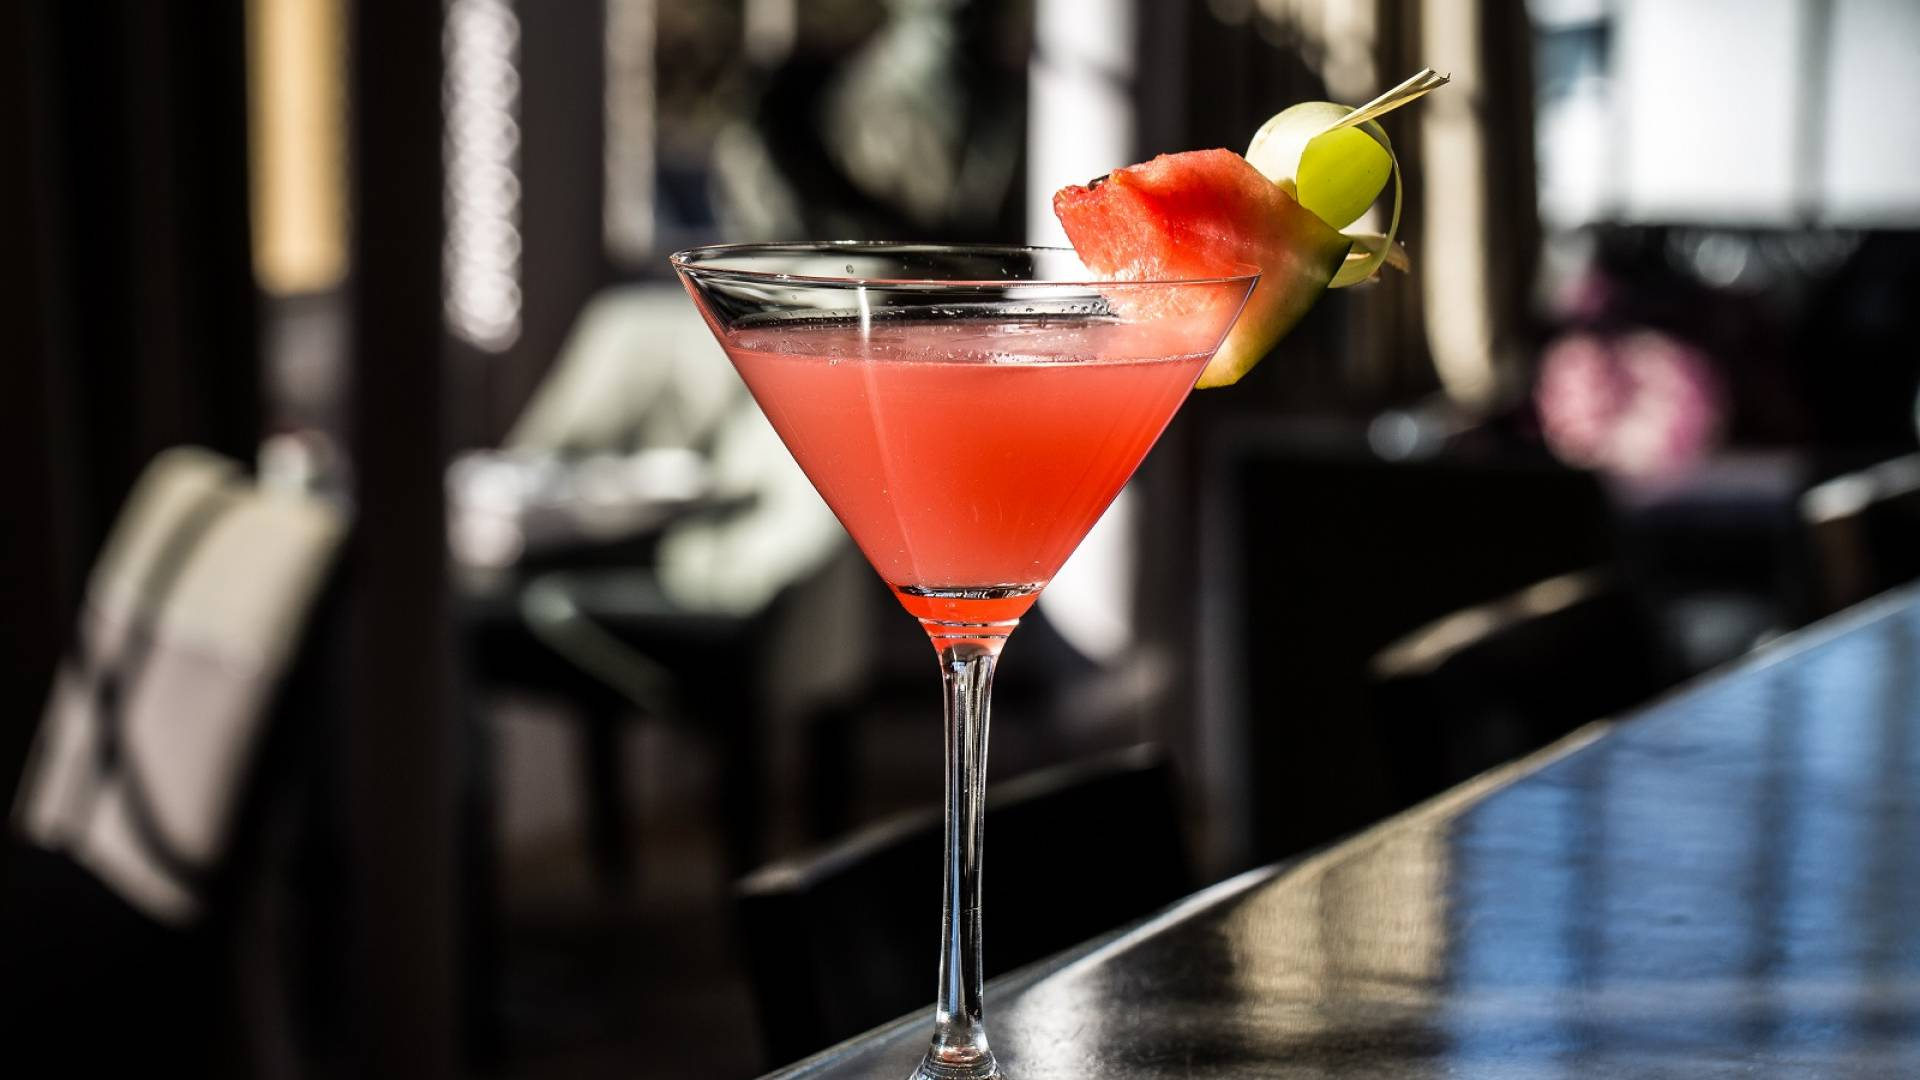 Watermelon and lemongrass martini 2